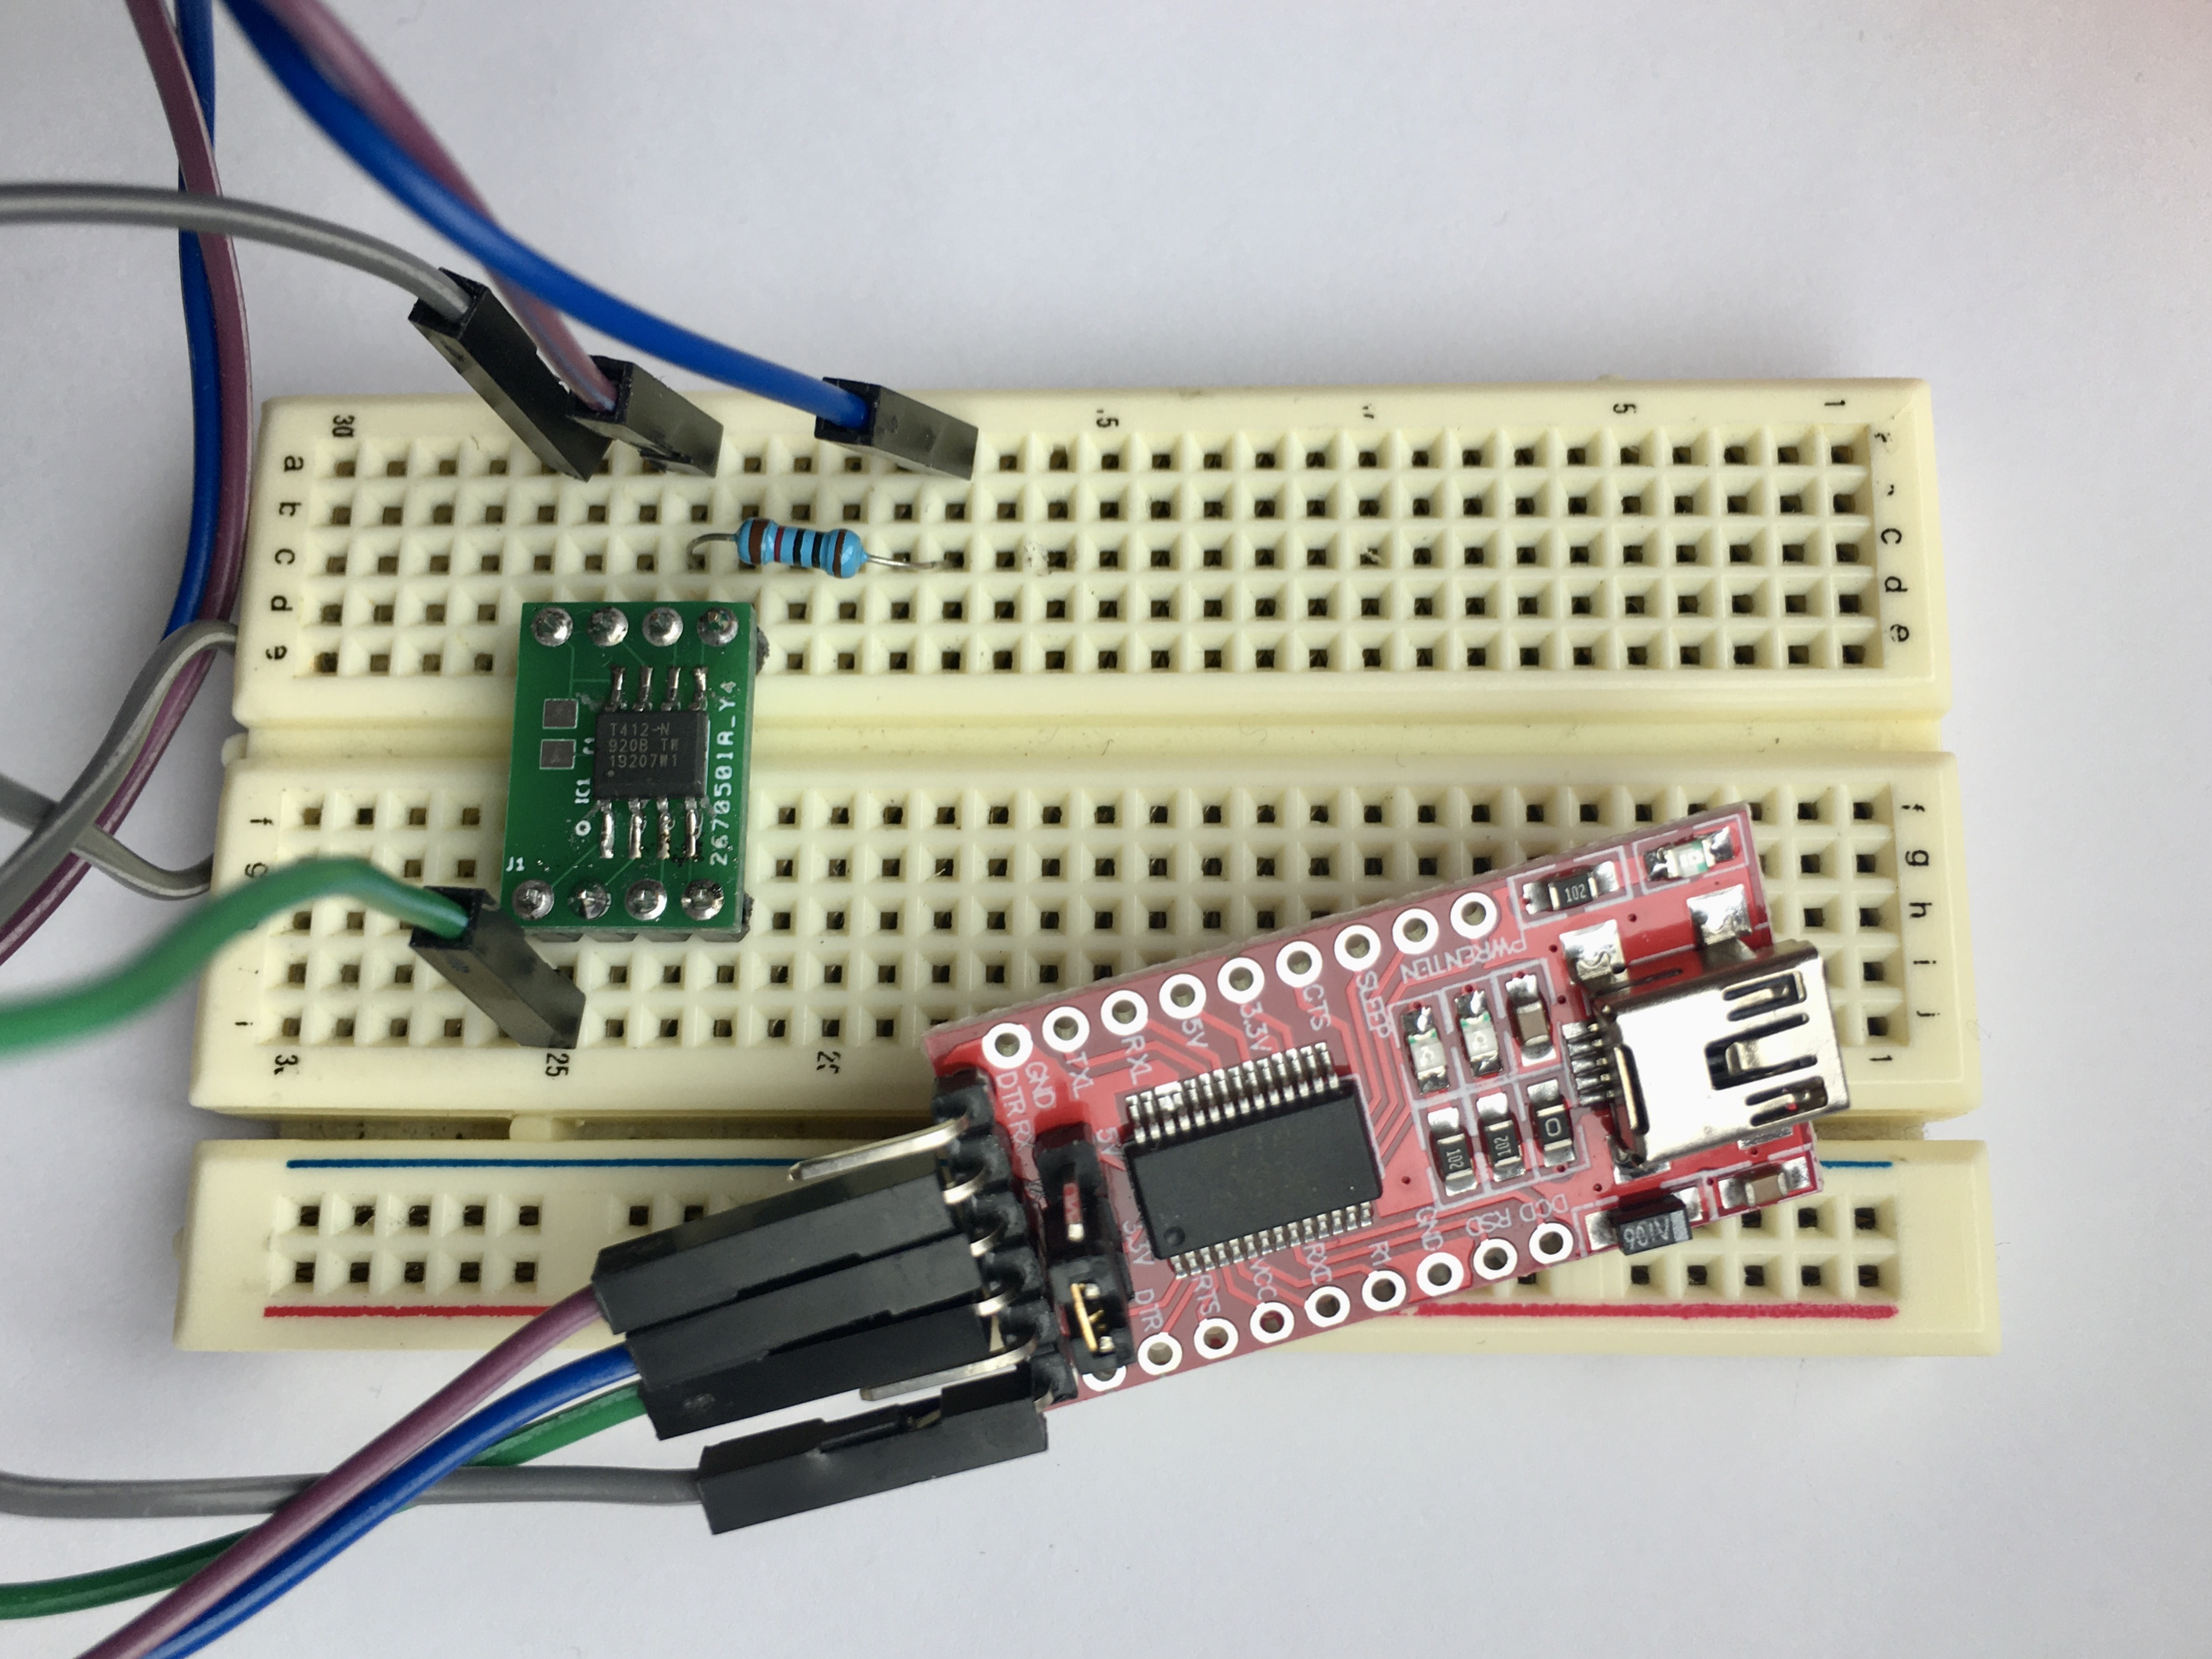 ATtiny412 connected to the USB to serial adapter